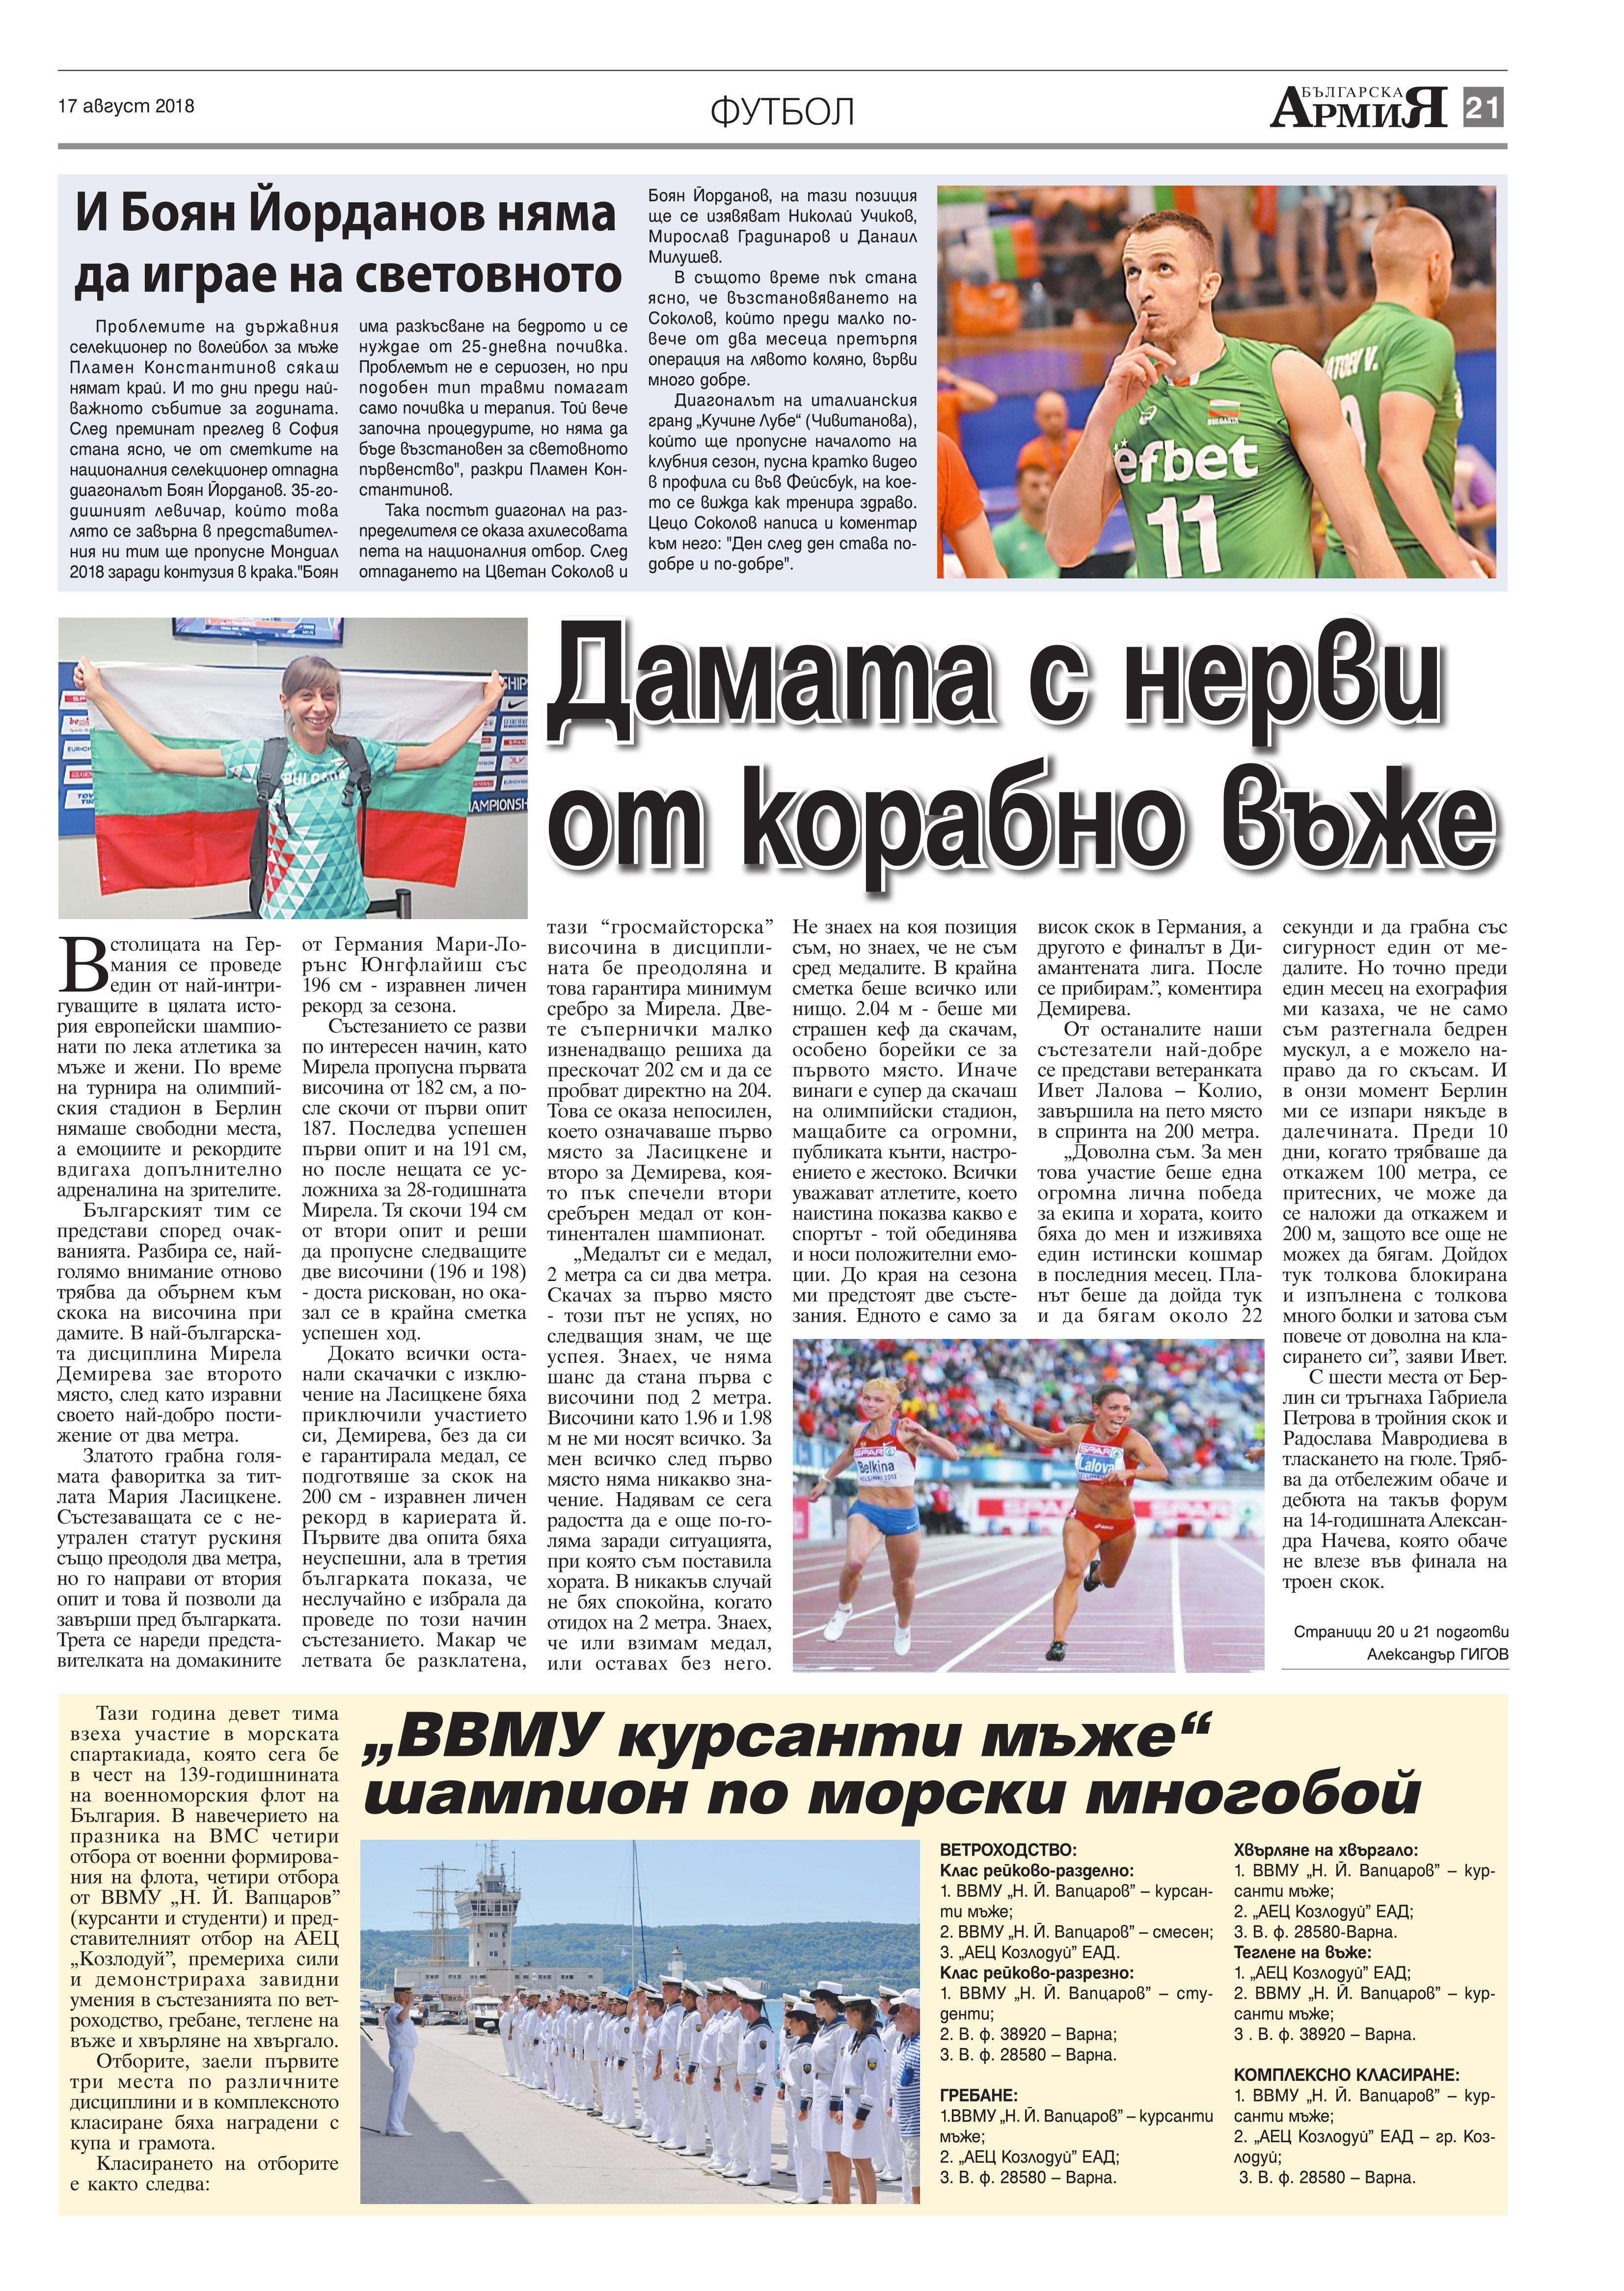 https://armymedia.bg/wp-content/uploads/2015/06/21.page1_-62.jpg